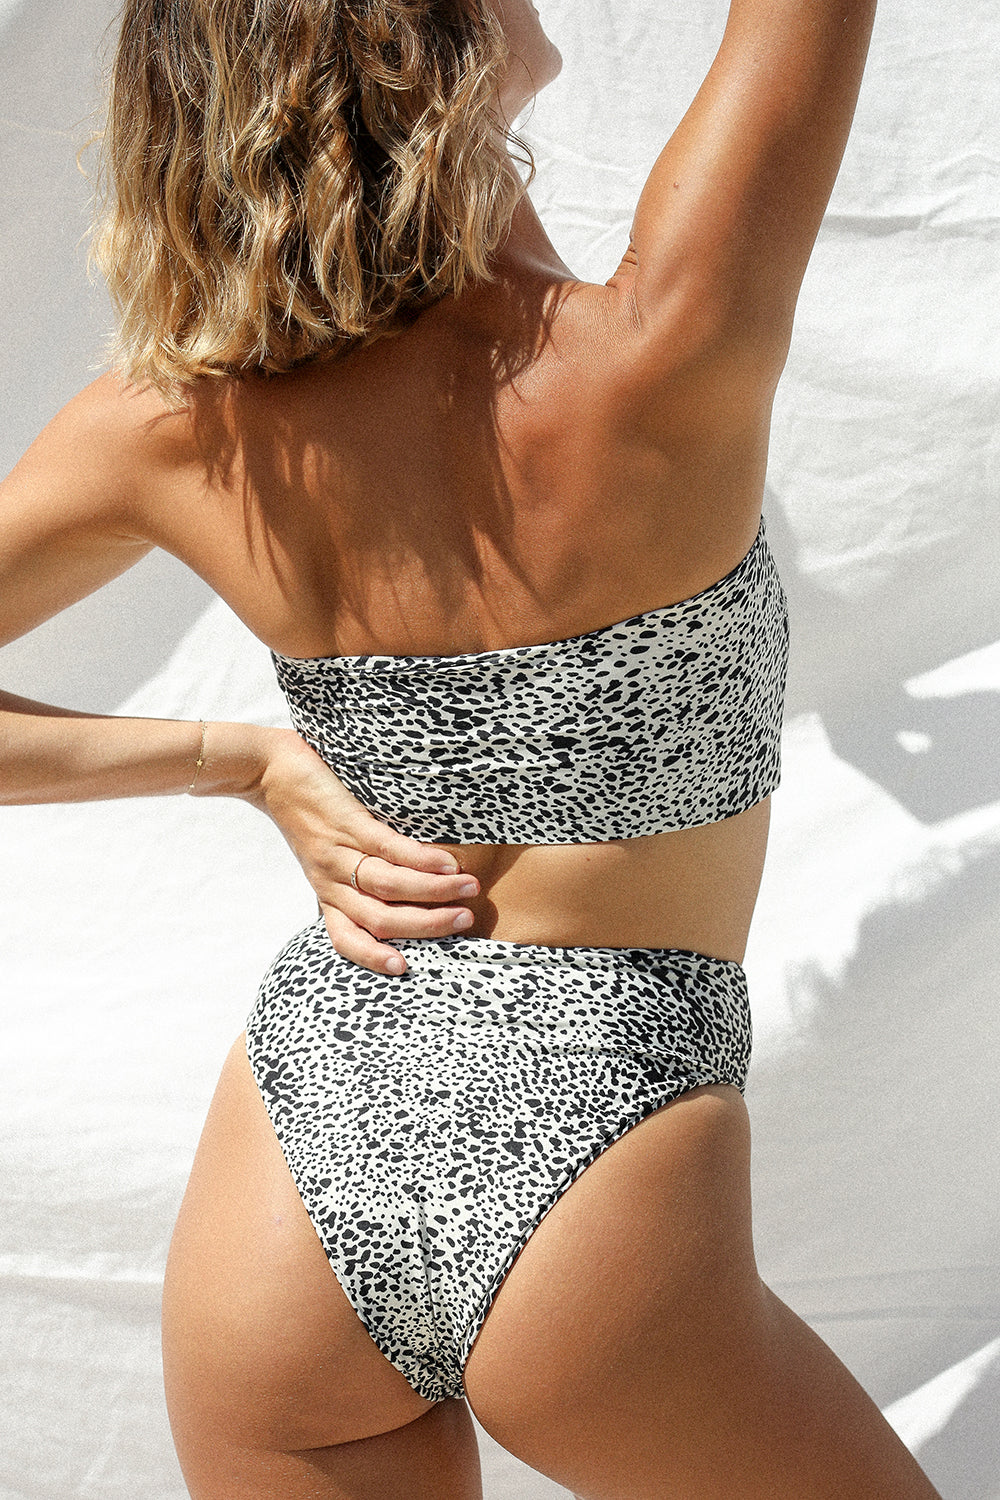 Stone Fox Swim Sumatra Bottom in Snow Leopard (Last One)